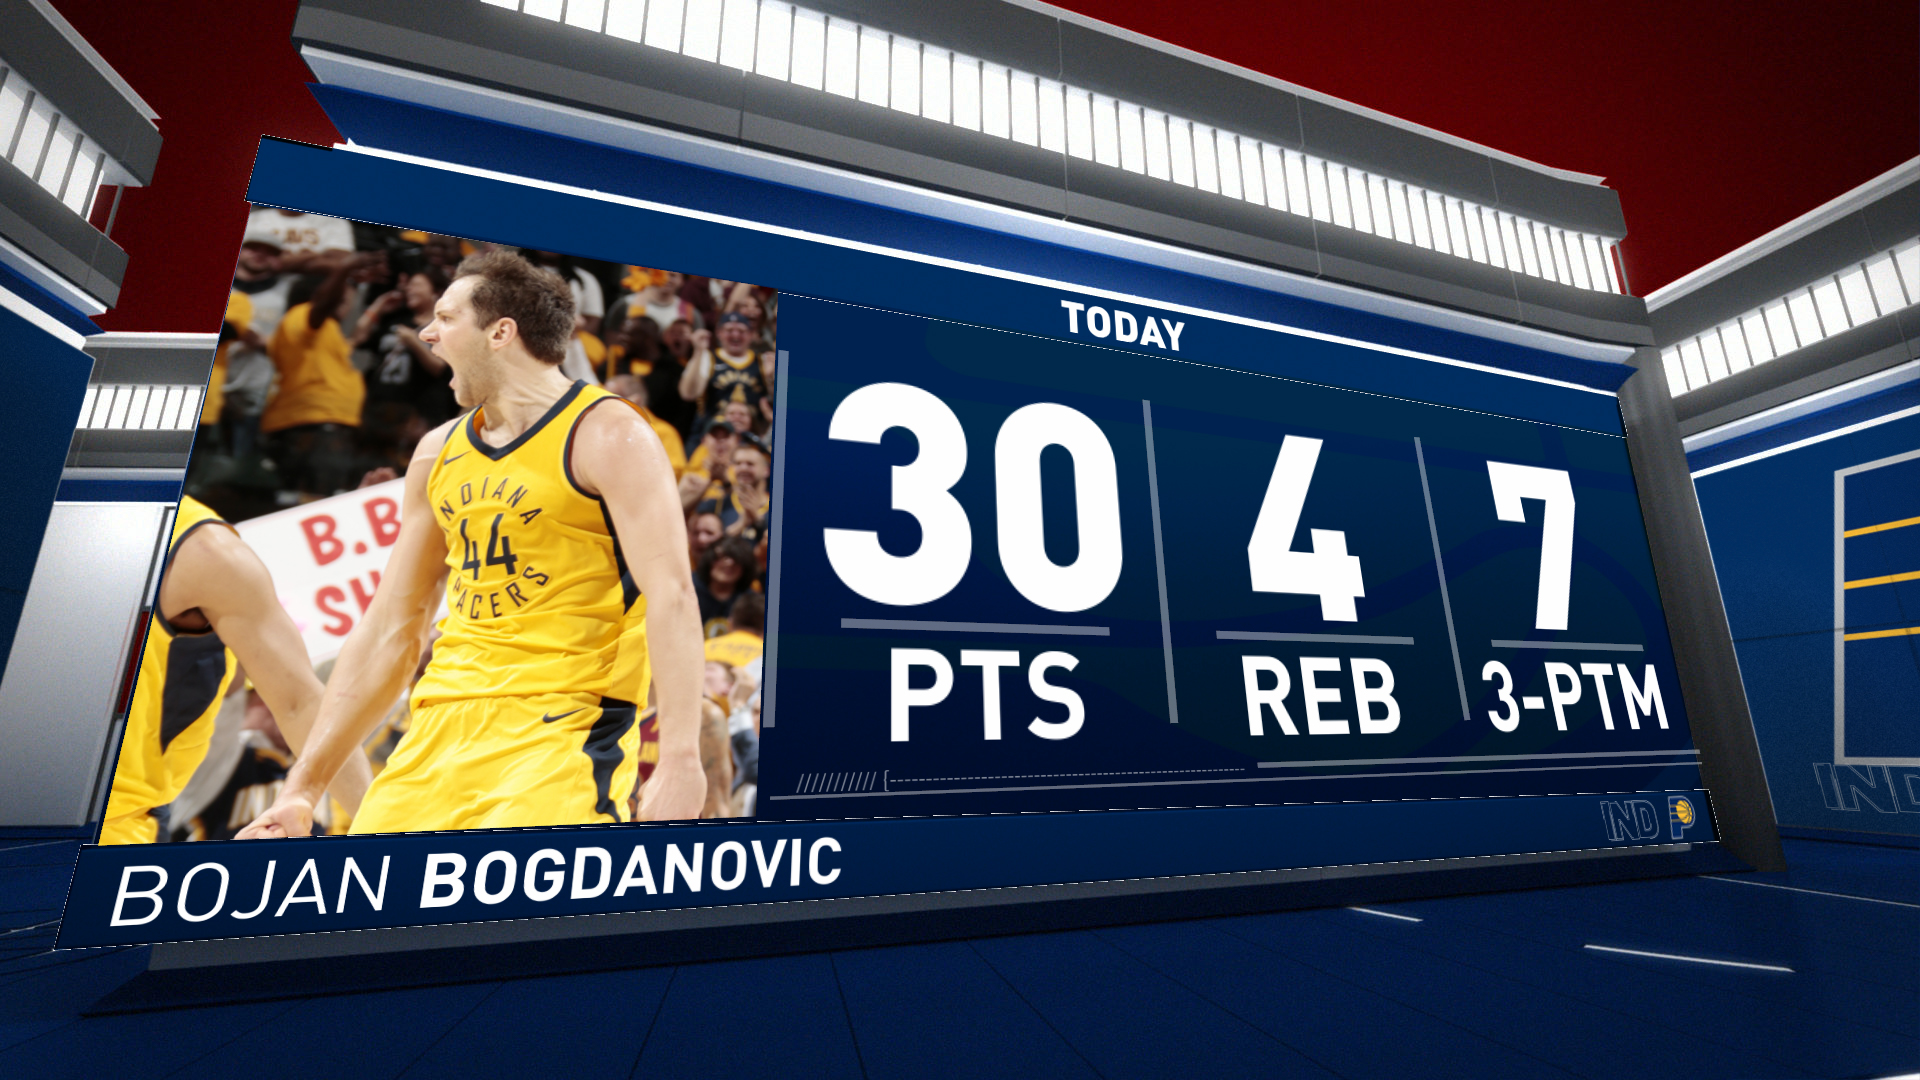 Bojan Bogdanovic Highlights